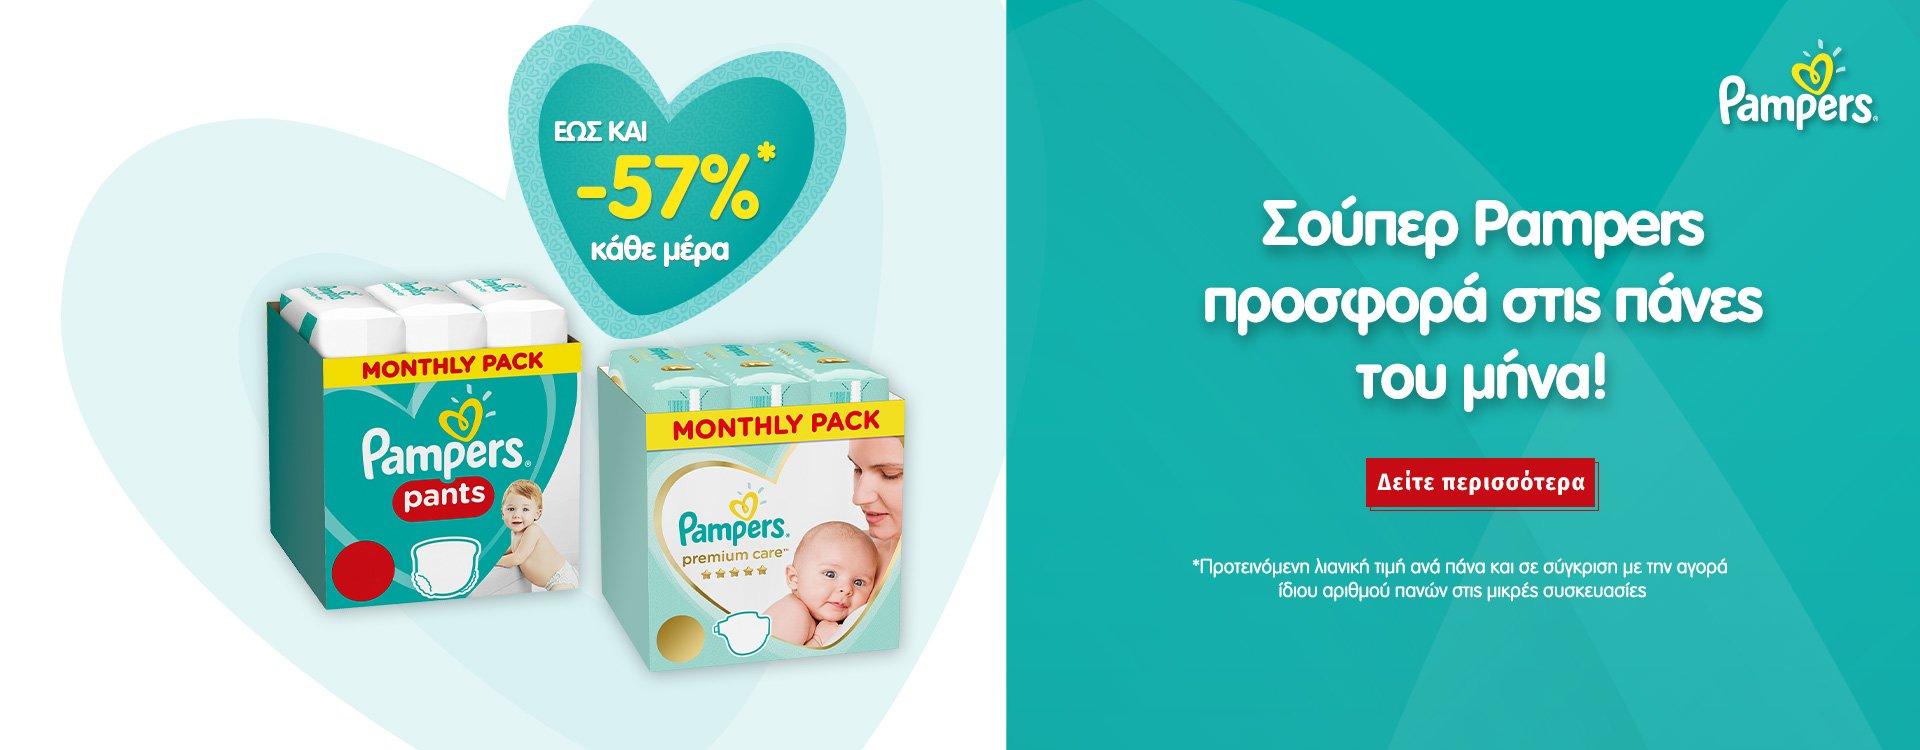 Pampers Montlhy Pack